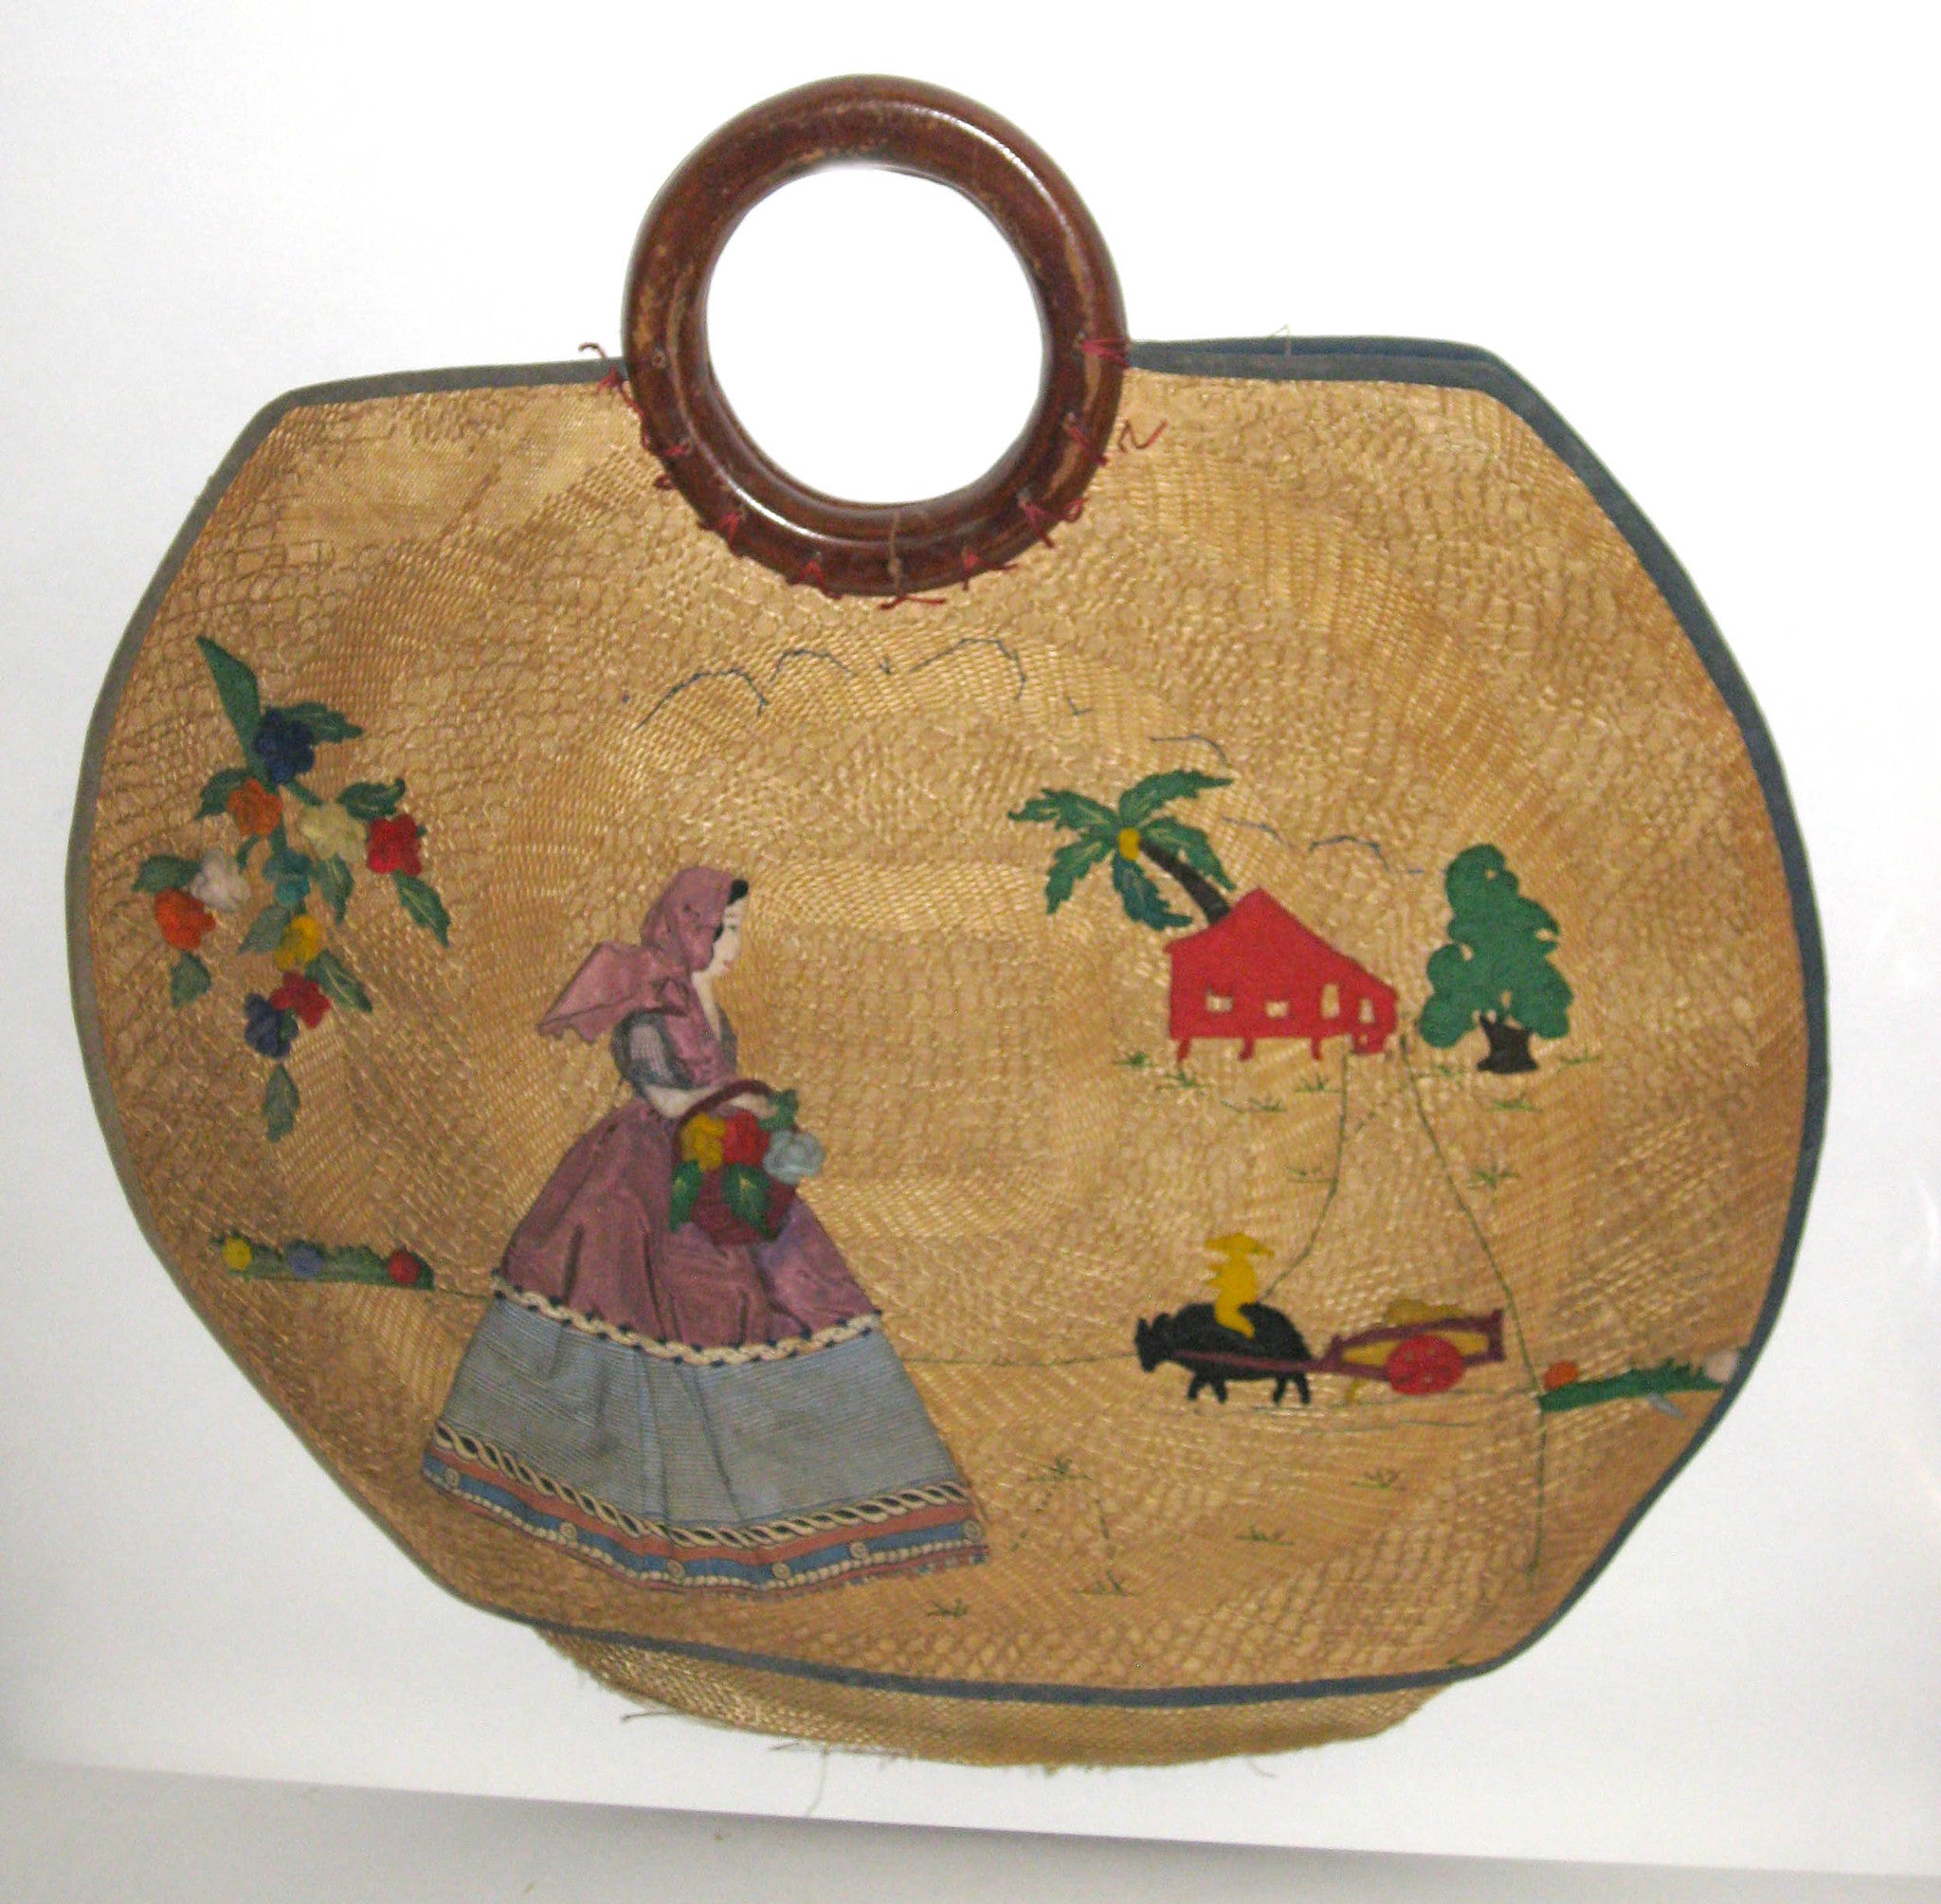 Vintage Woven Pineda Applique Straw Purse